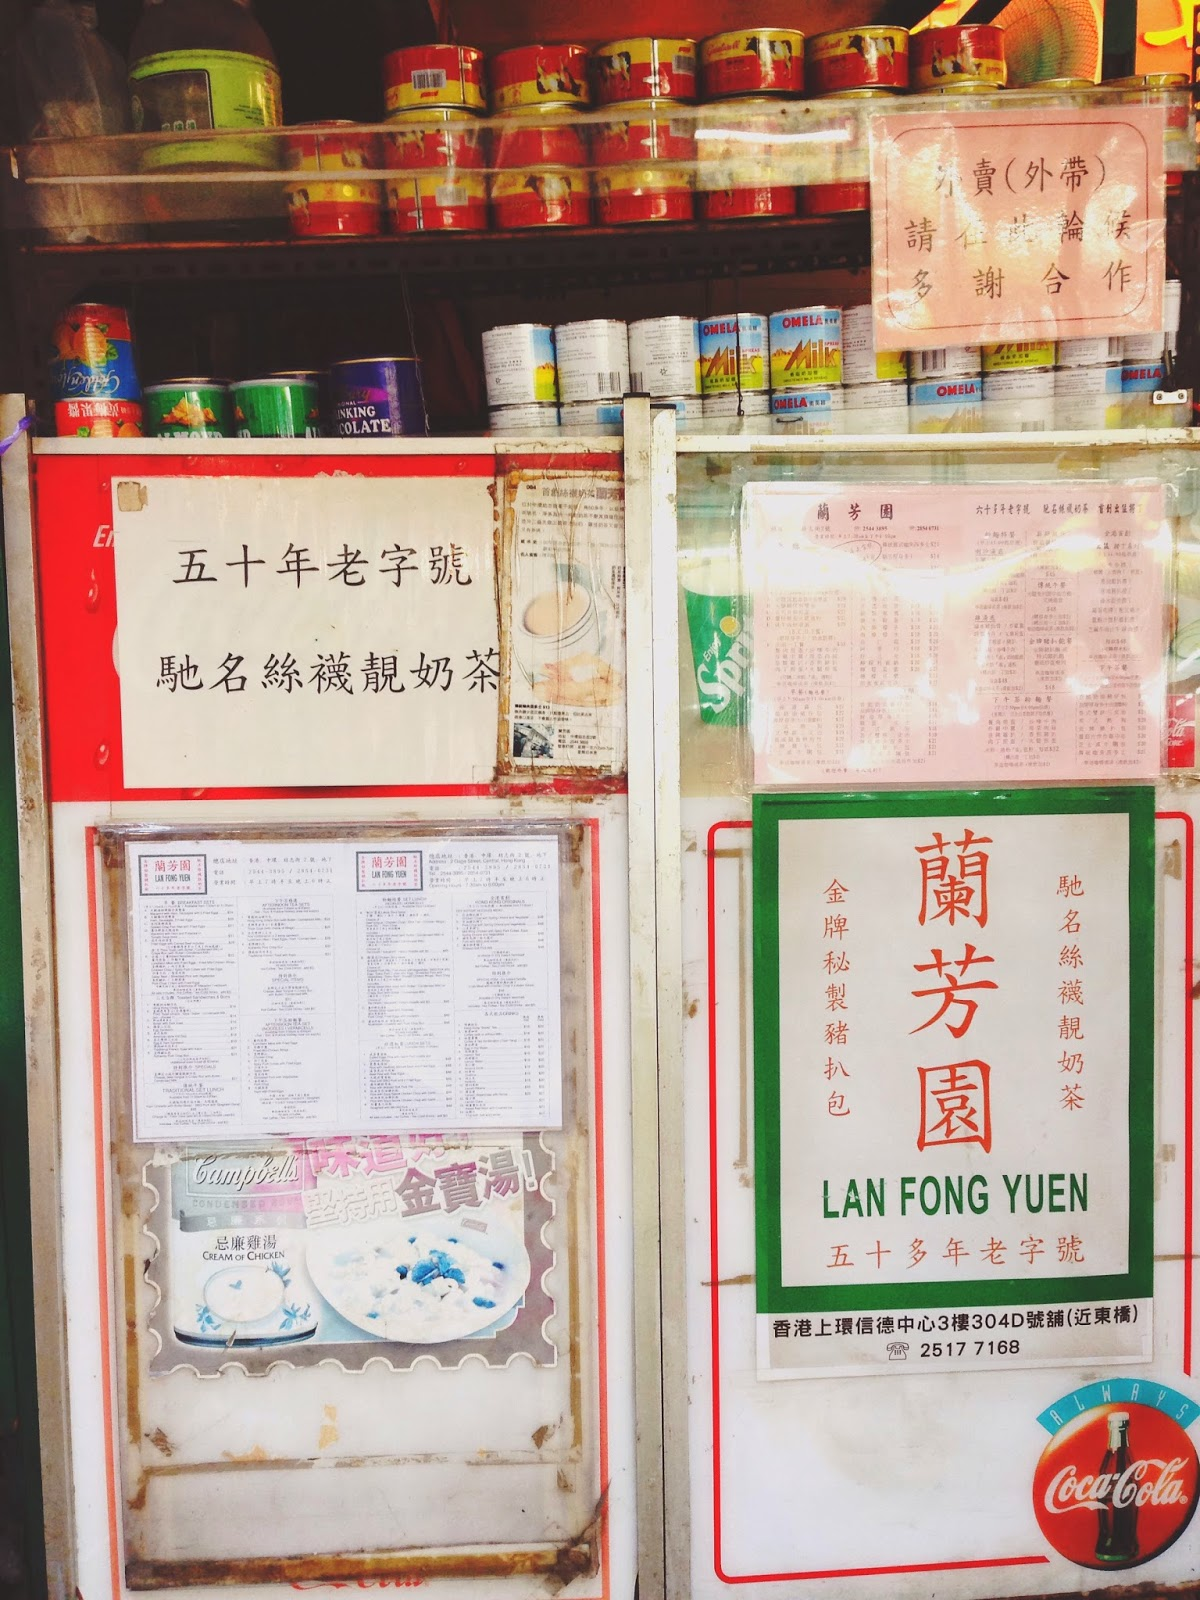 Lan Fong Yuen - originator of the silk stocking milk tea